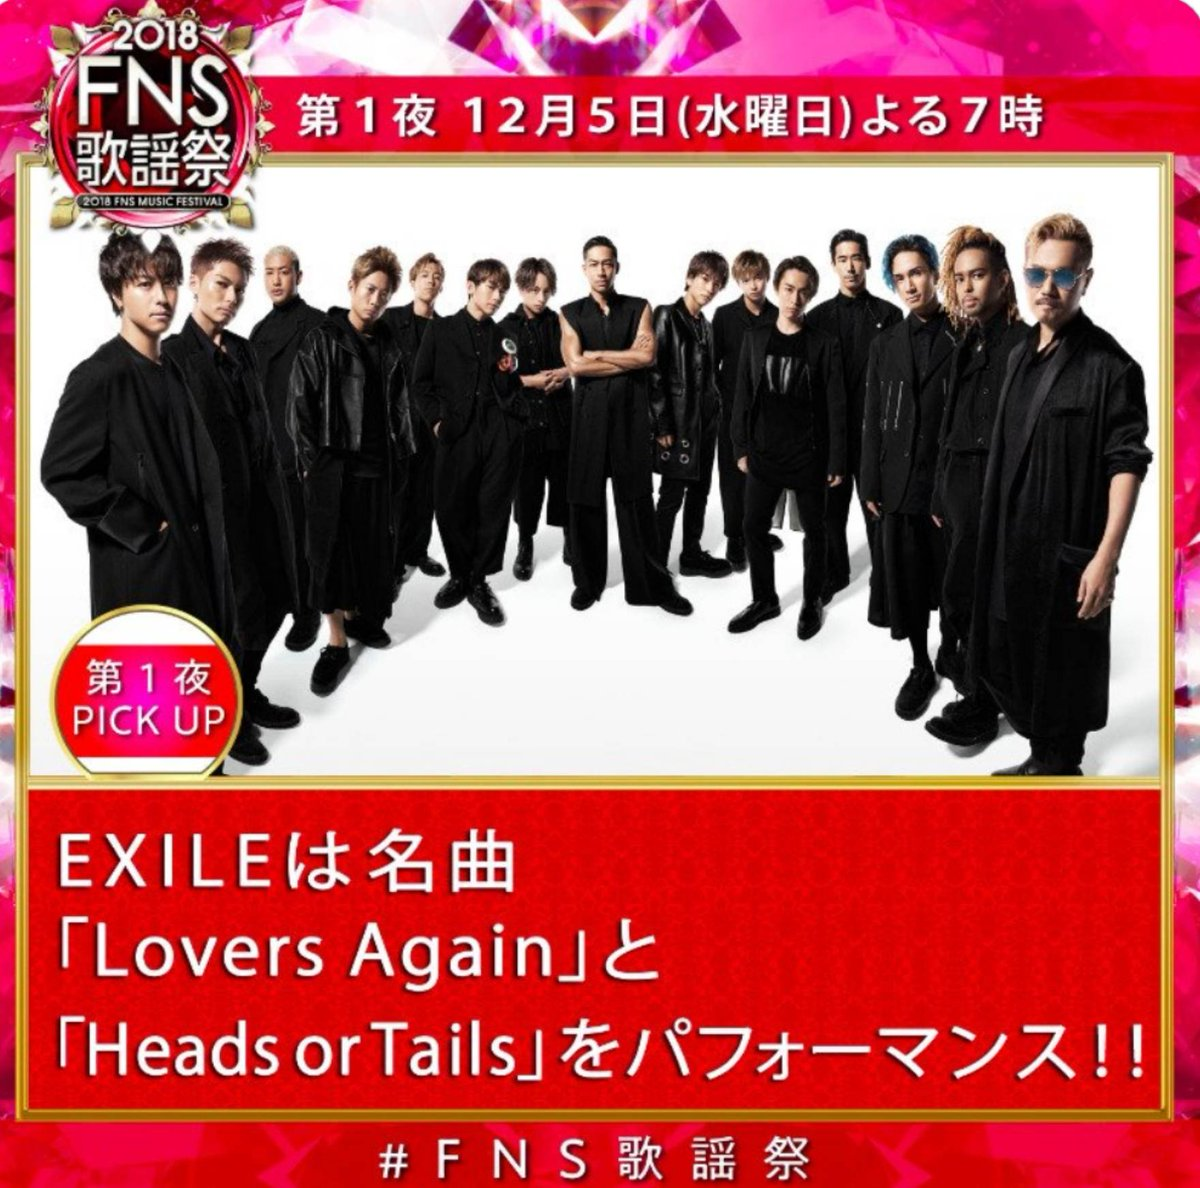 【TRIBE】12/5水 19:00-フジ「FNS歌謡祭 第1夜」★出演・EXILE「Heads or Tails」・三代目J Soul Brothers?クリスマス&ウィンターソングSPEXILE「Lovers Again」を15人でパフォーマンス!SHOKICHI&NESMITH&今市隆二&登坂広臣「LAST CHRISTMAS」